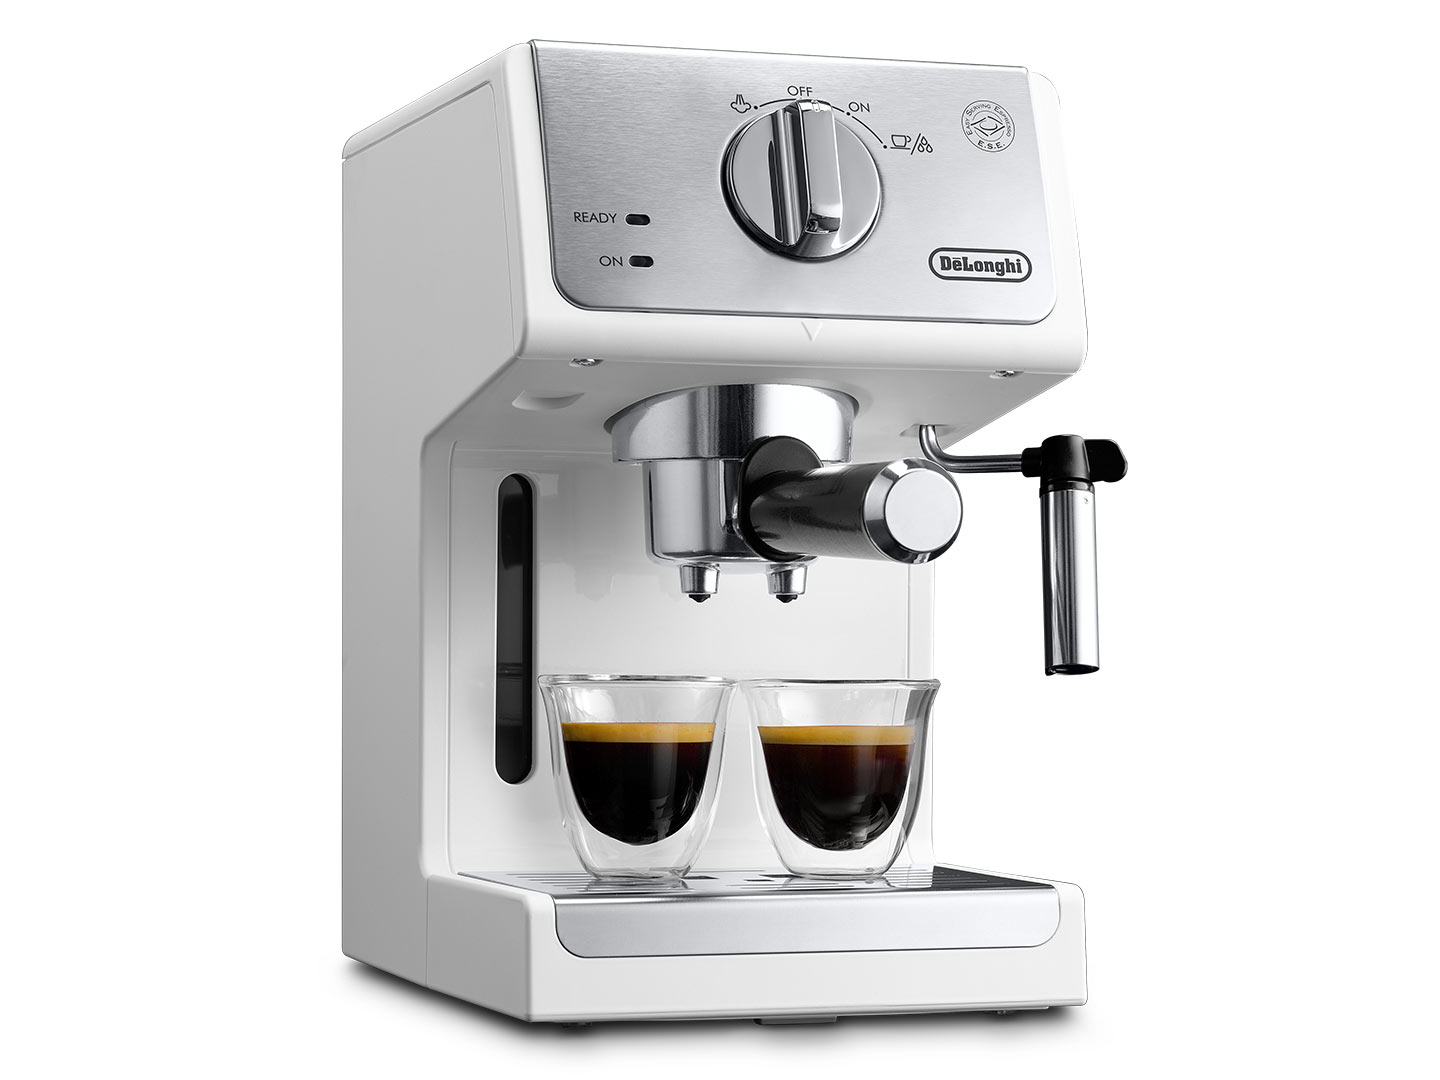 manual espresso machine ecp 3220 instruction